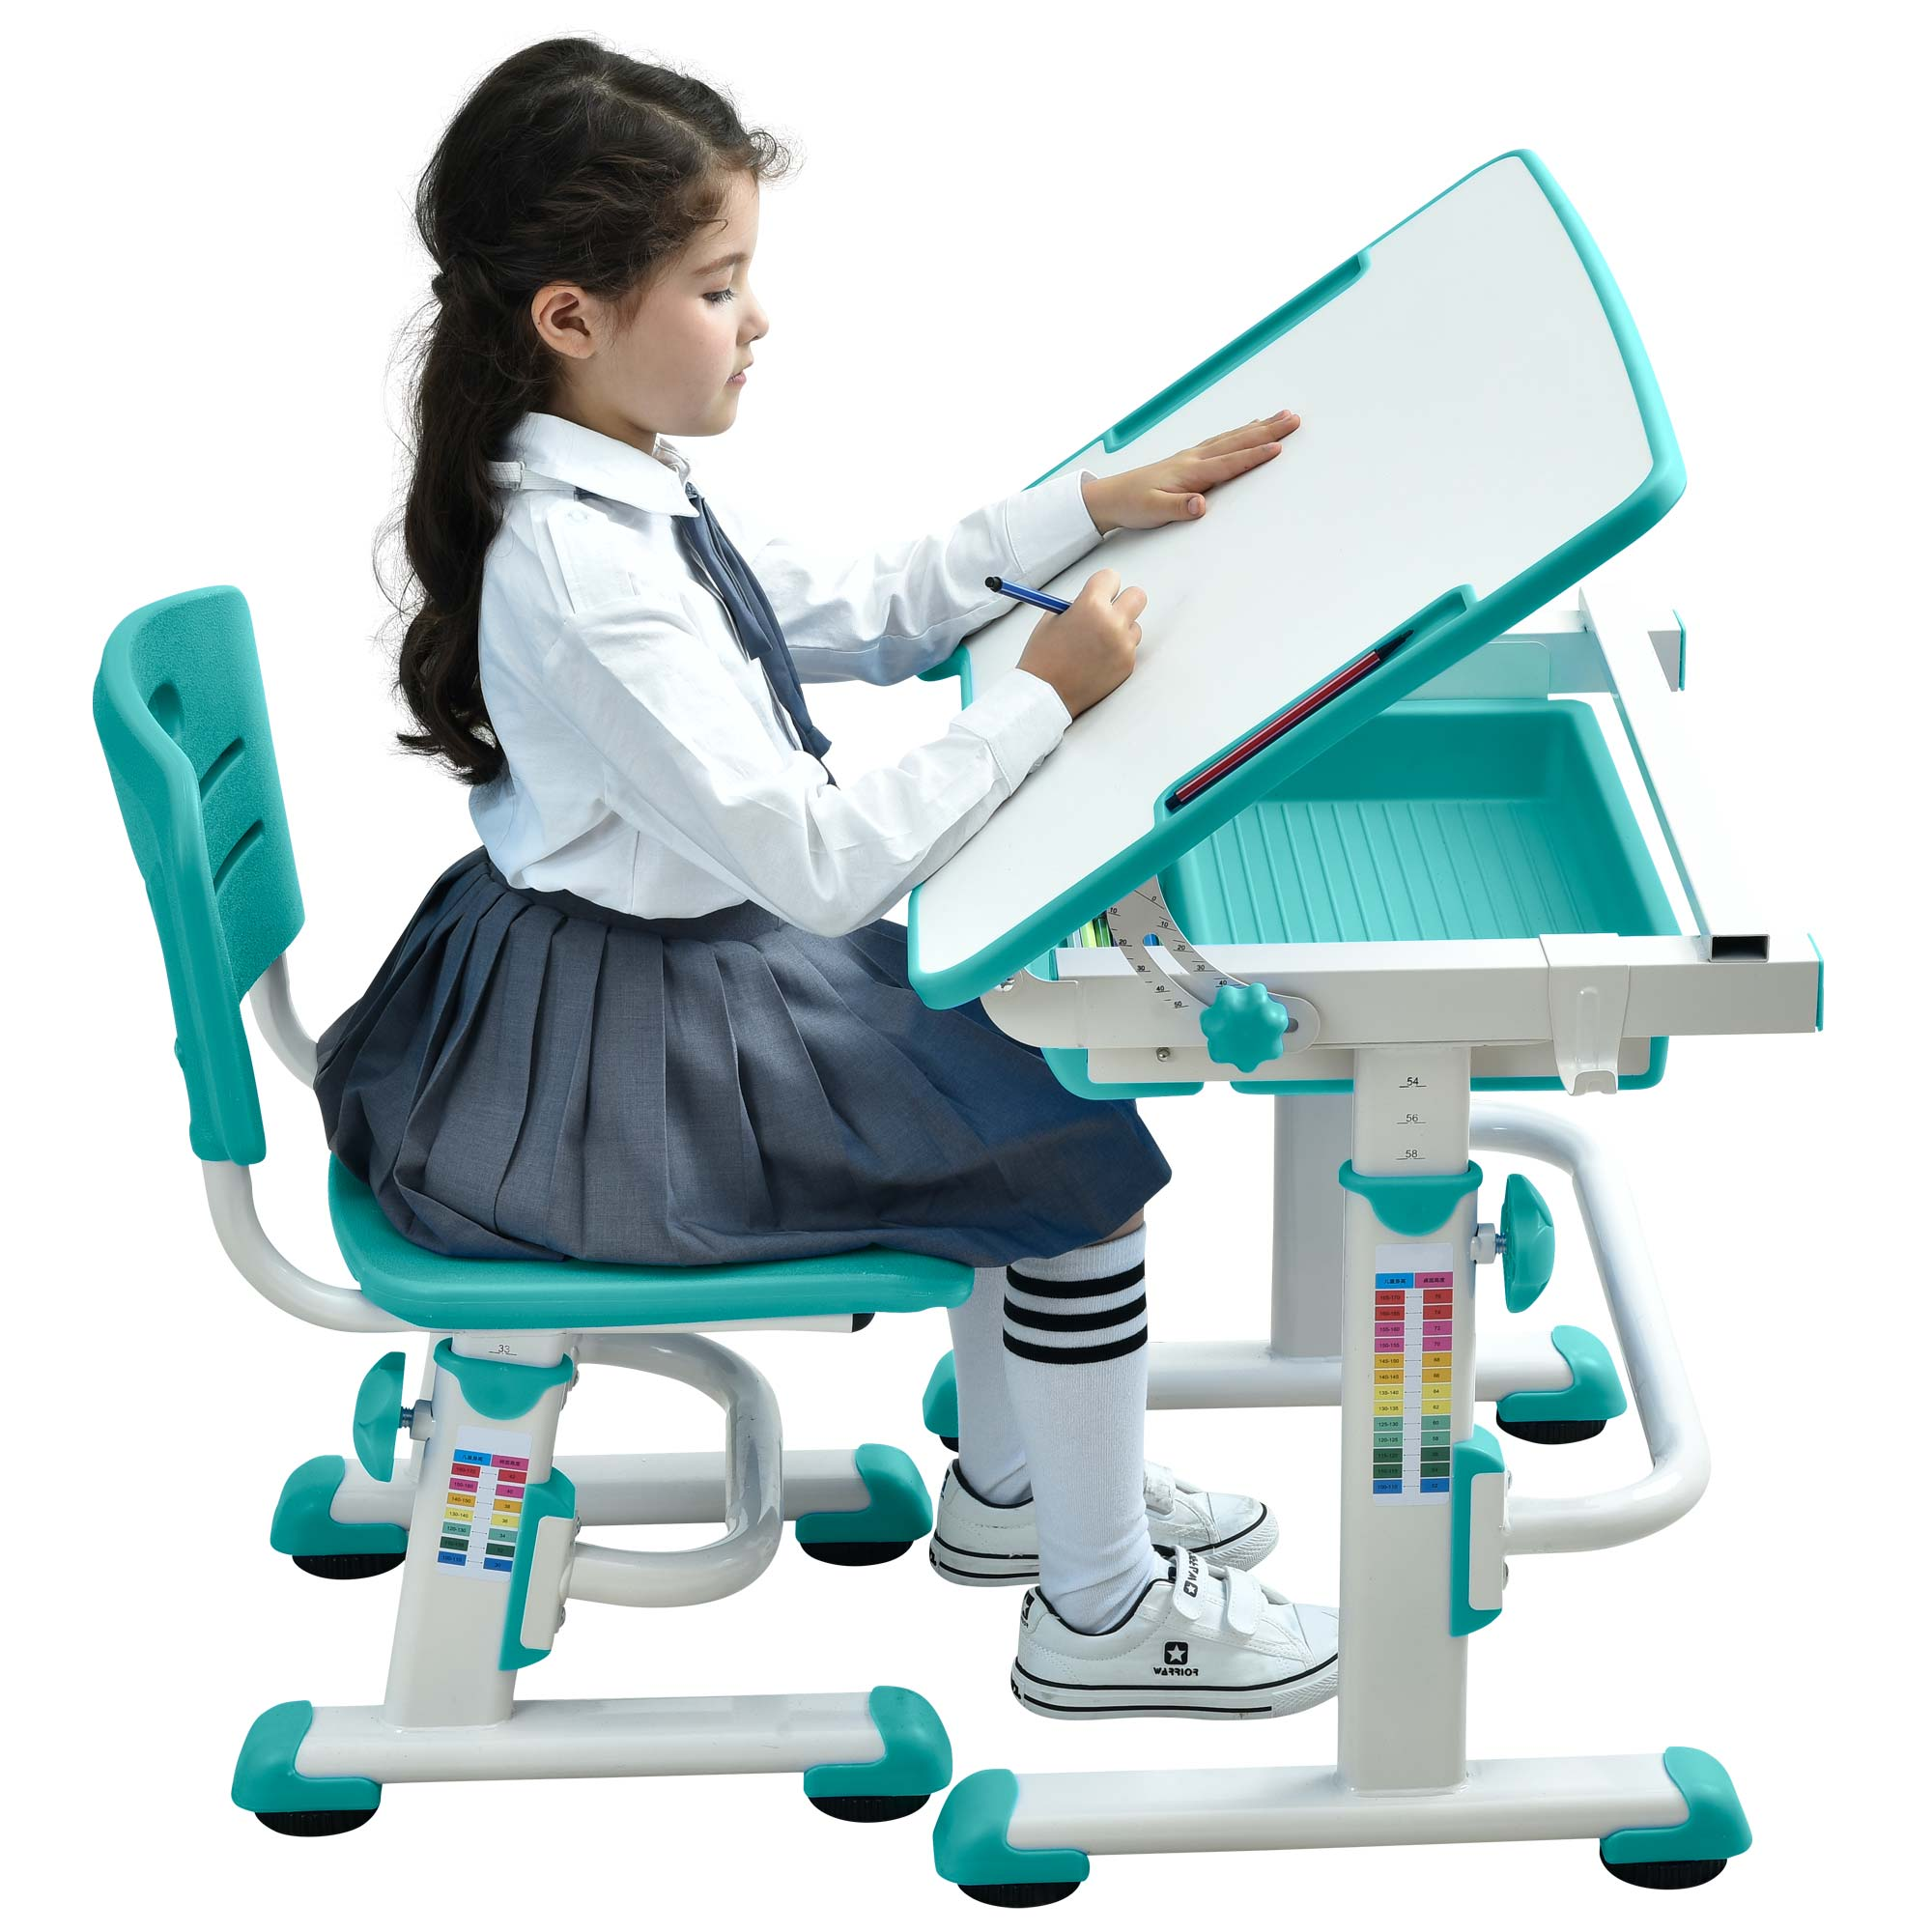 adjustable-kids-desk-for-study-table-for-children-ergonomic-children-learning-table-green-desk-02